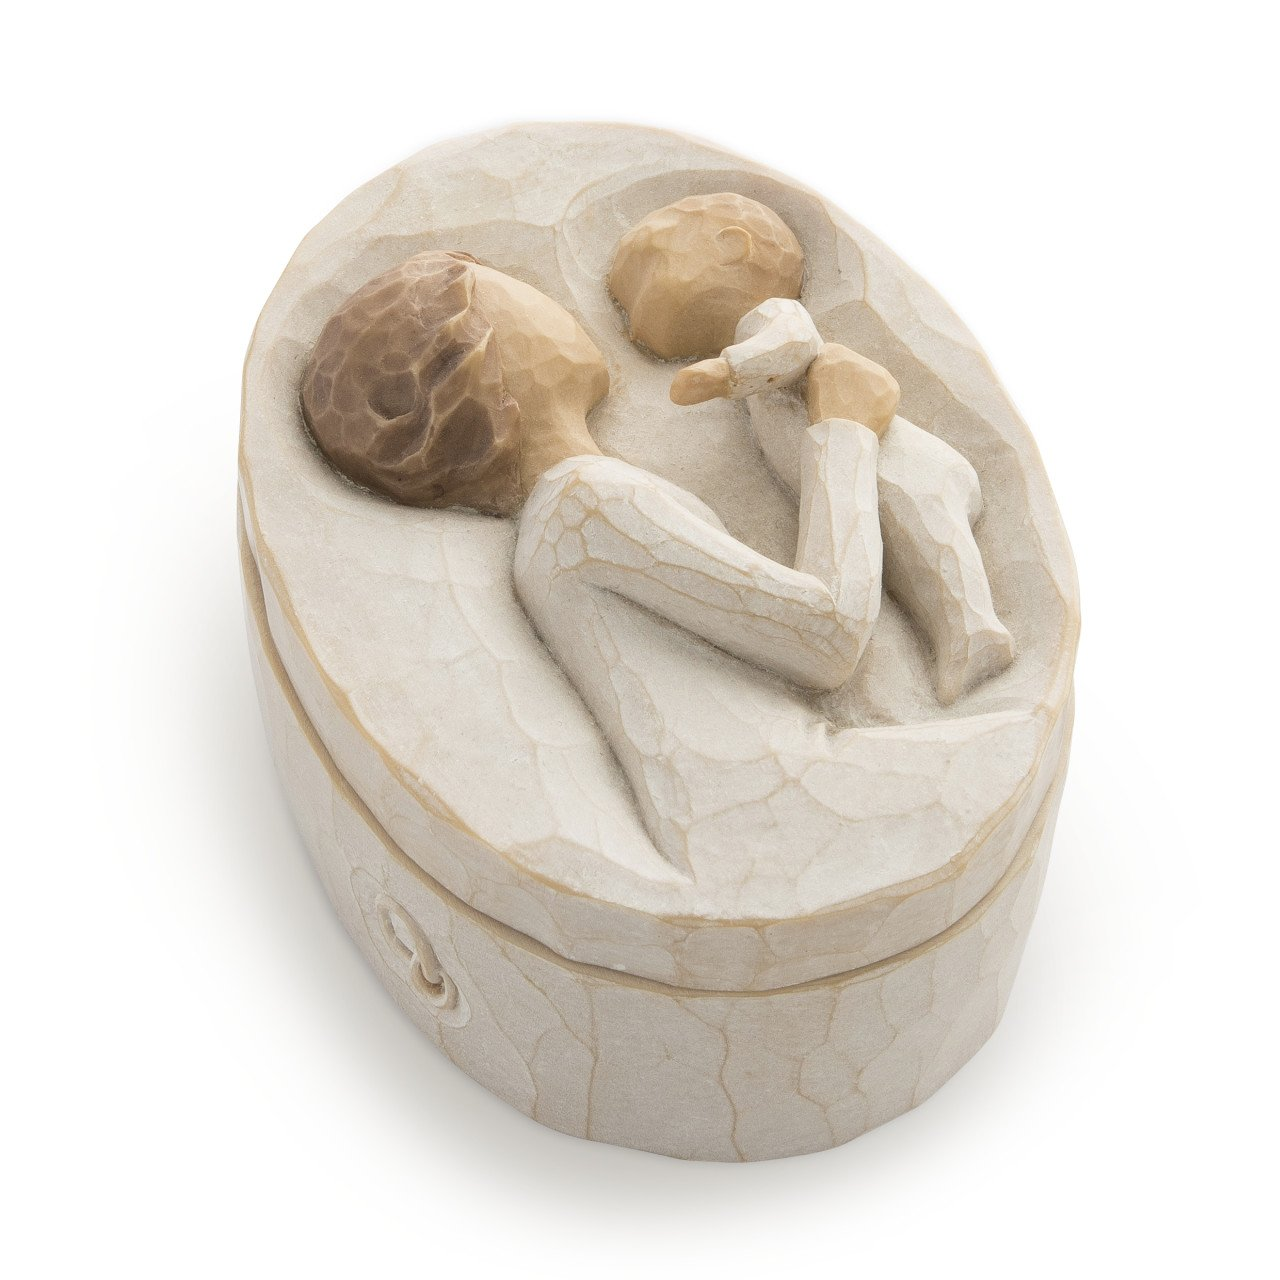 Willow Tree hand-painted sculpted Keepsake Box, Grandmother